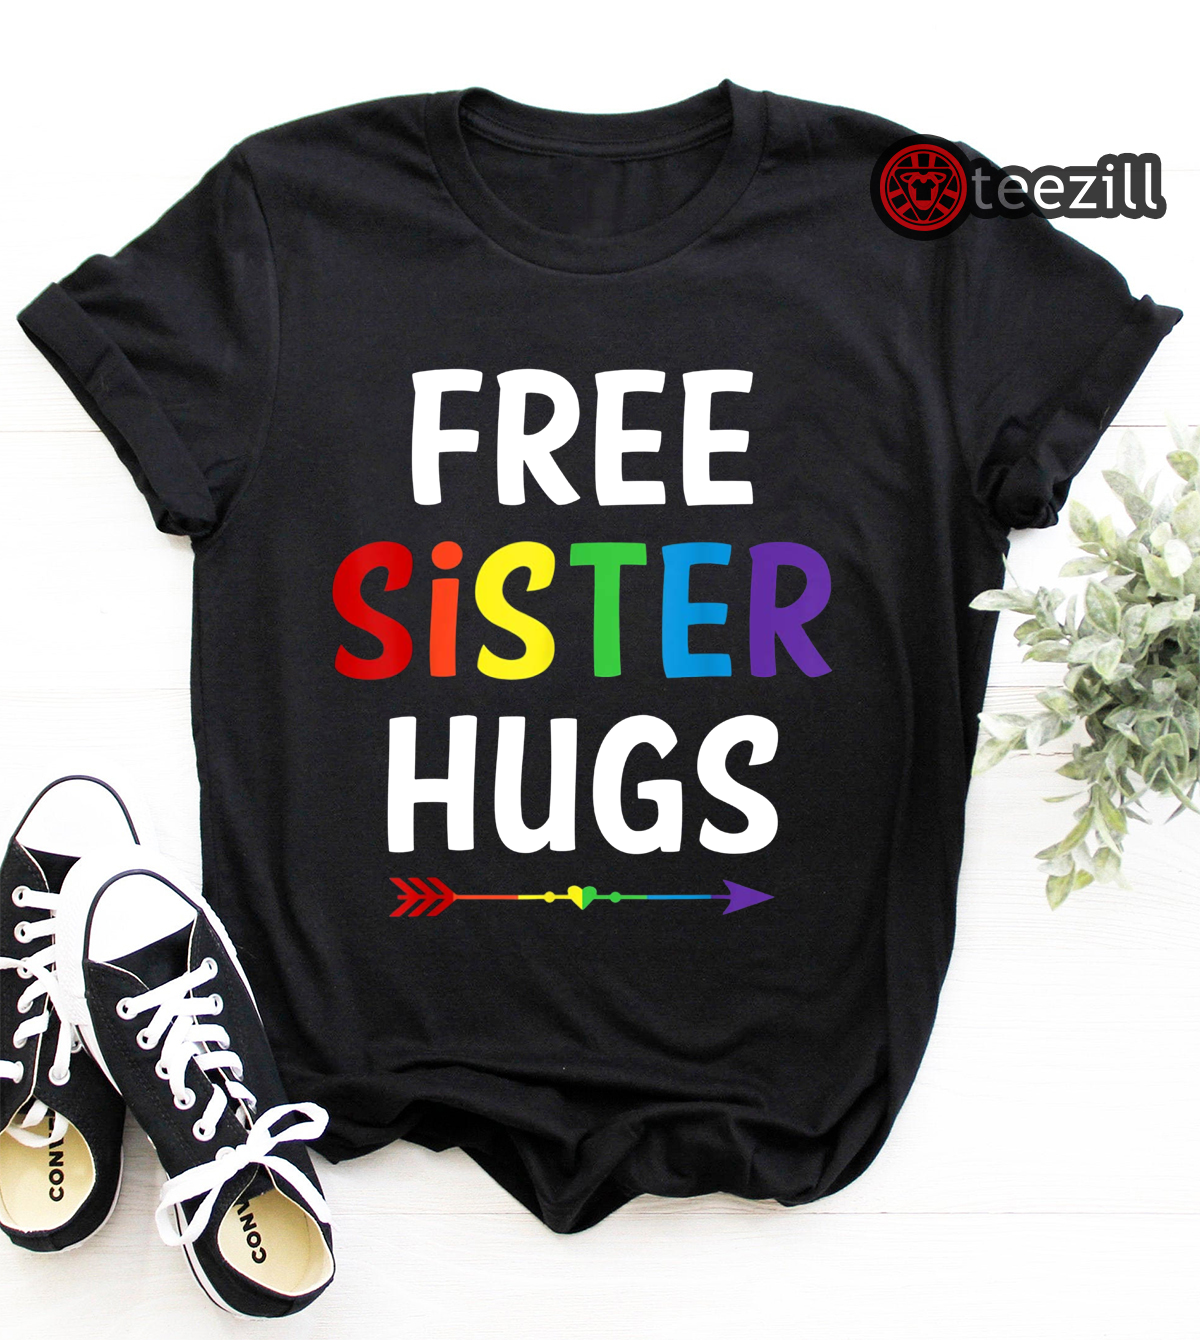 how to choose so cheap recognized brands Free Sister Hugs LGBT Heart Gay Flag T-Shirts Men, Women QuocTe Tee!